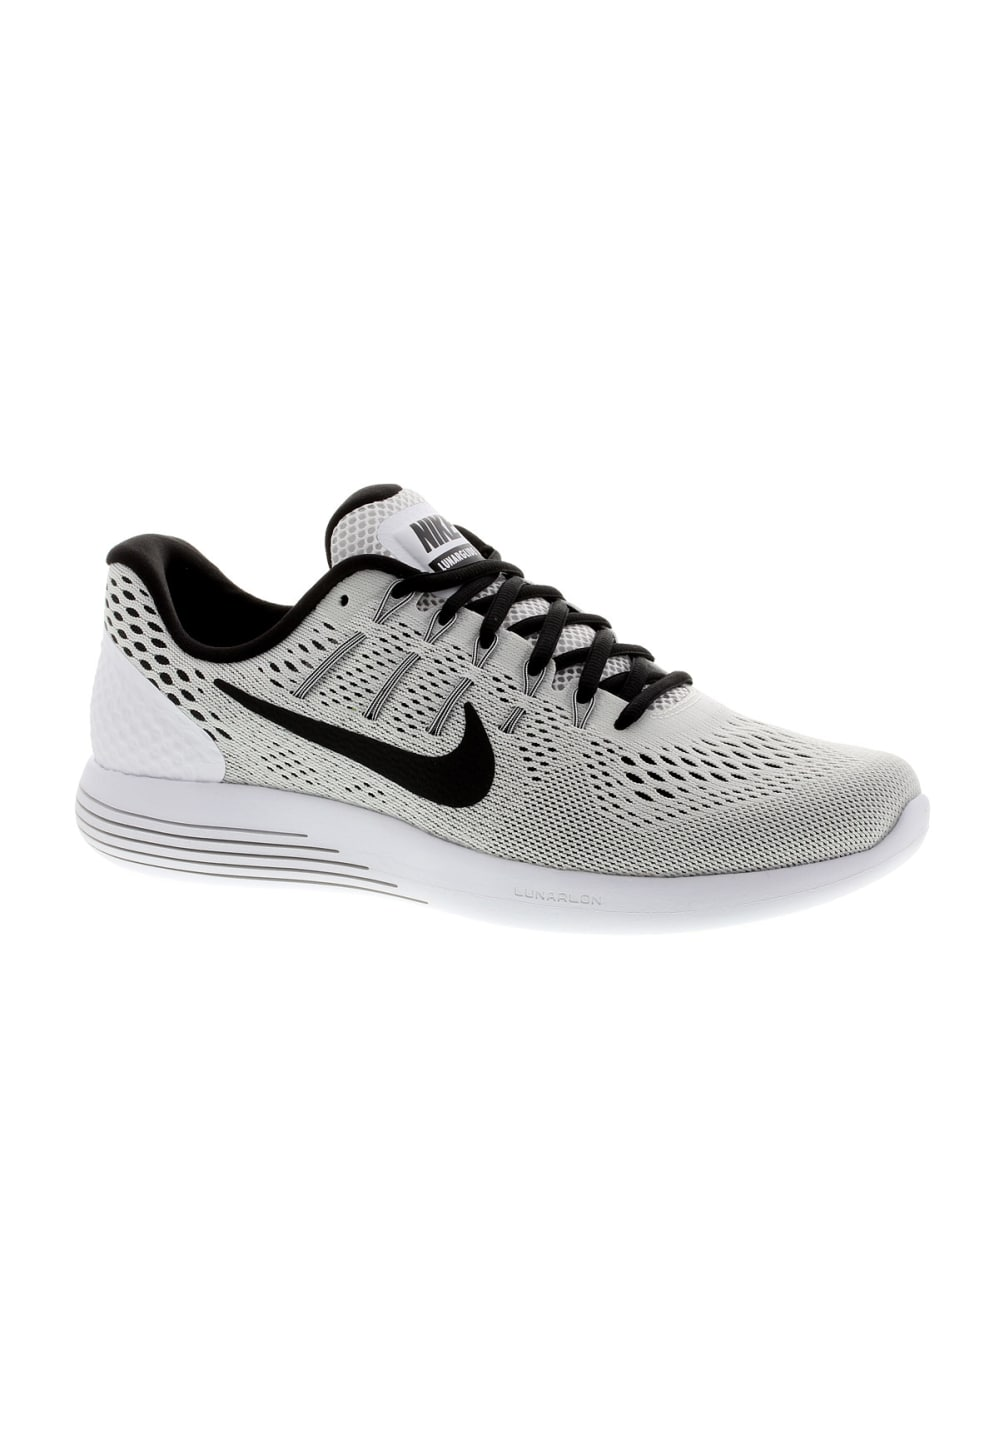 super populaire b7a84 bd69a Nike Lunarglide 8 - Running shoes for Women - Grey